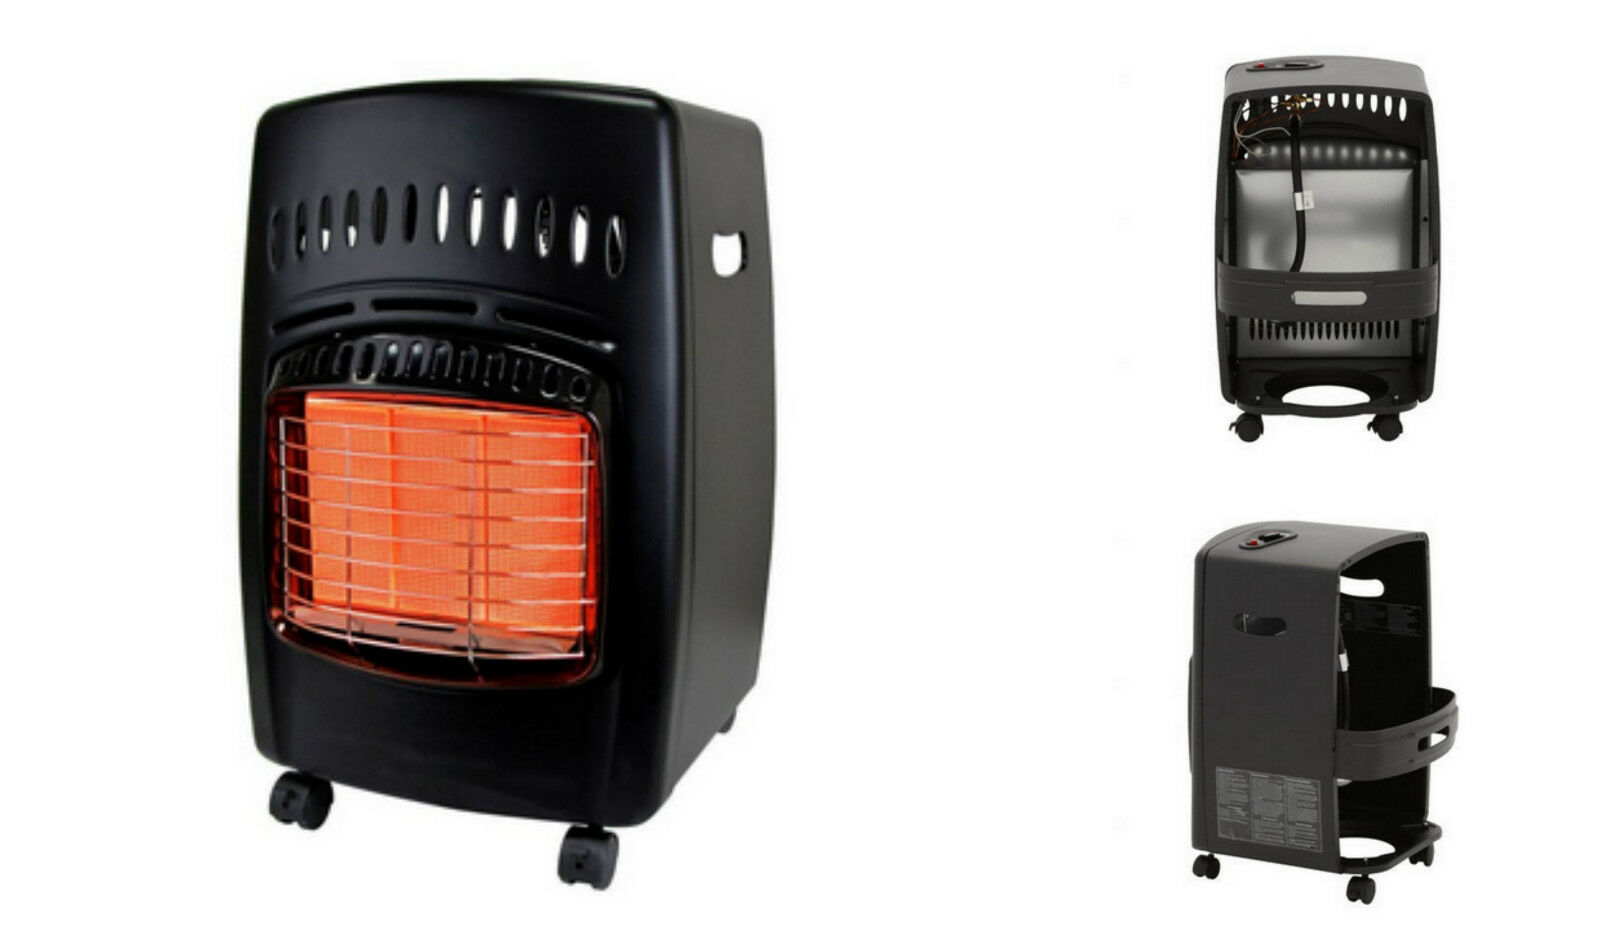 Dyna glo propane natural gas portable radiant space heater for Best propane heating systems